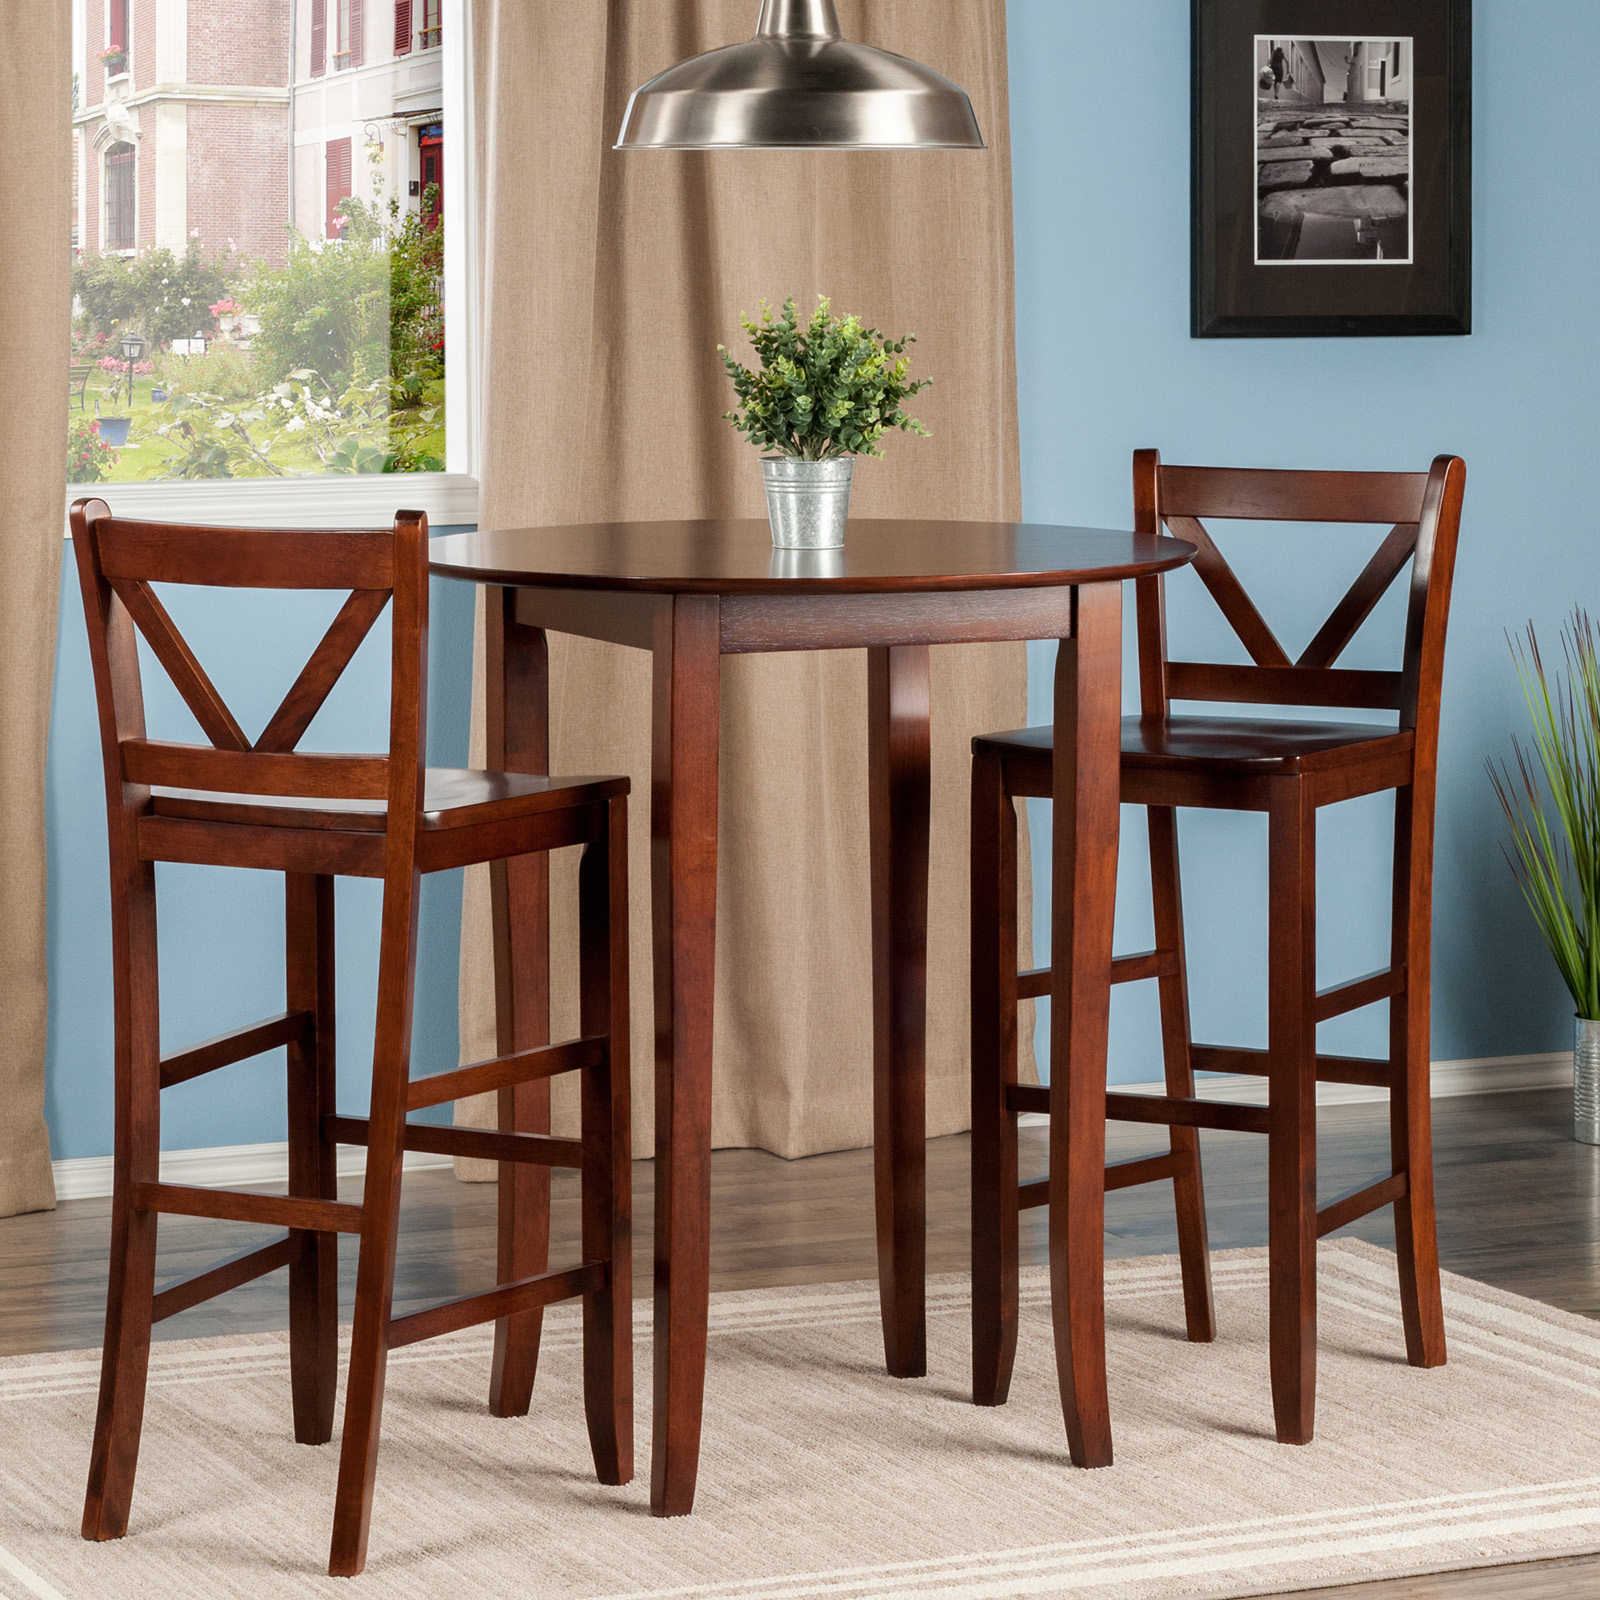 Counter height round table and chairs - Winsome Trading Fiona 3 Piece Counter Height Round Dining Table Set Hayneedle